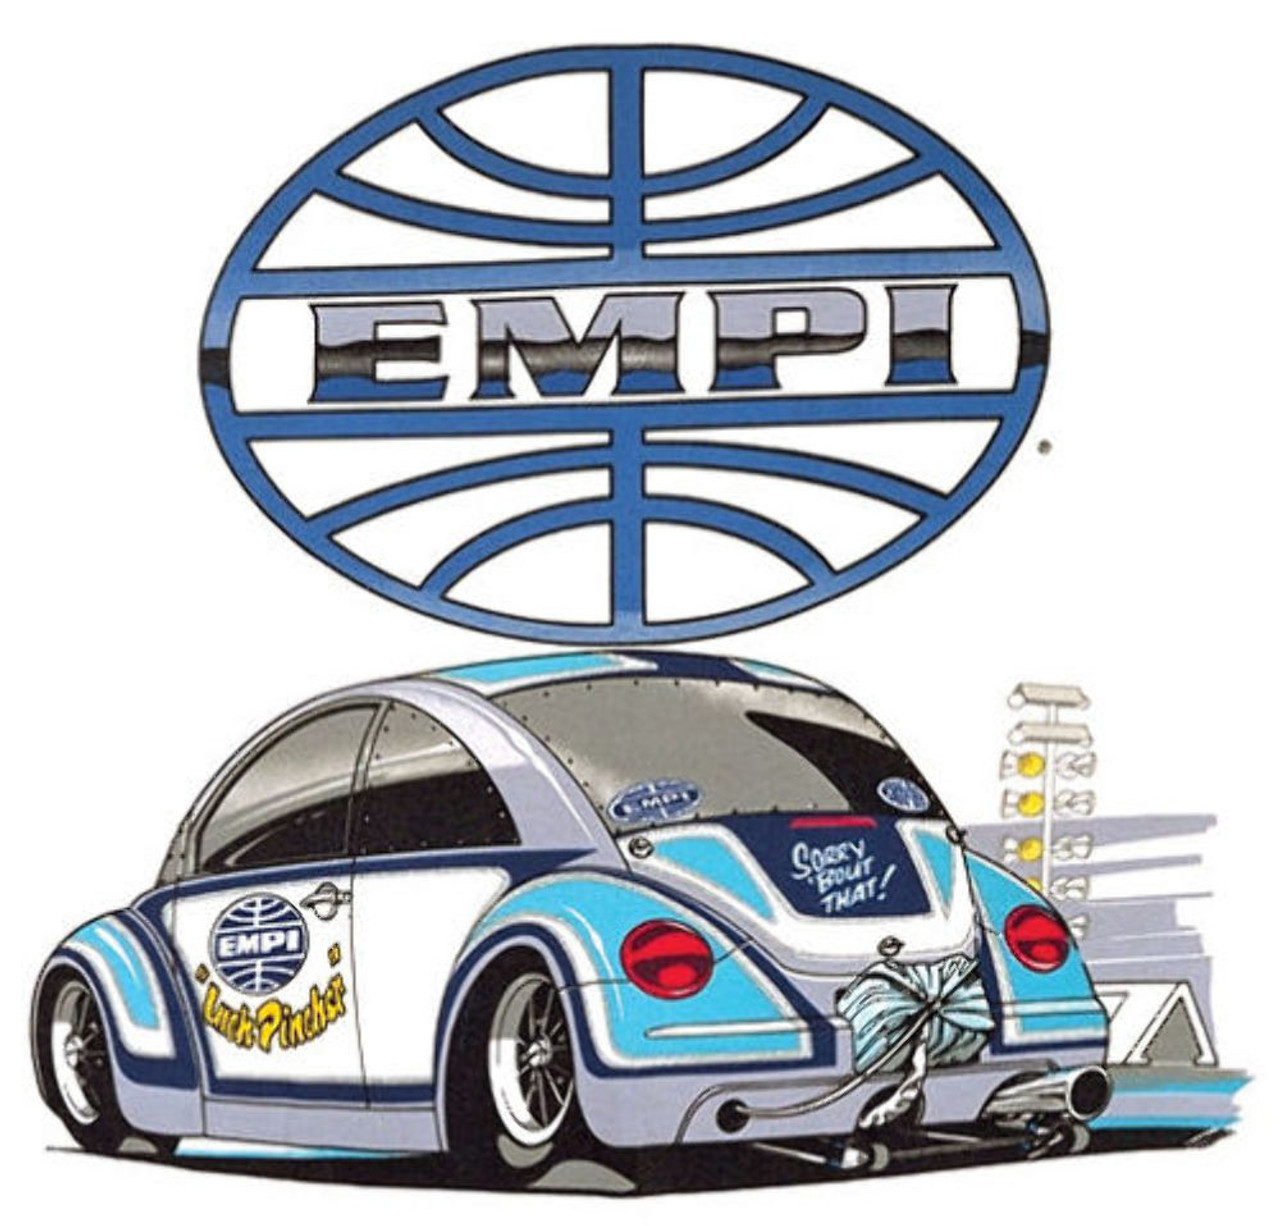 Empi T-Shirt VW Bug New Beetle Inch-Pincher 100% Cotton, Large 9807